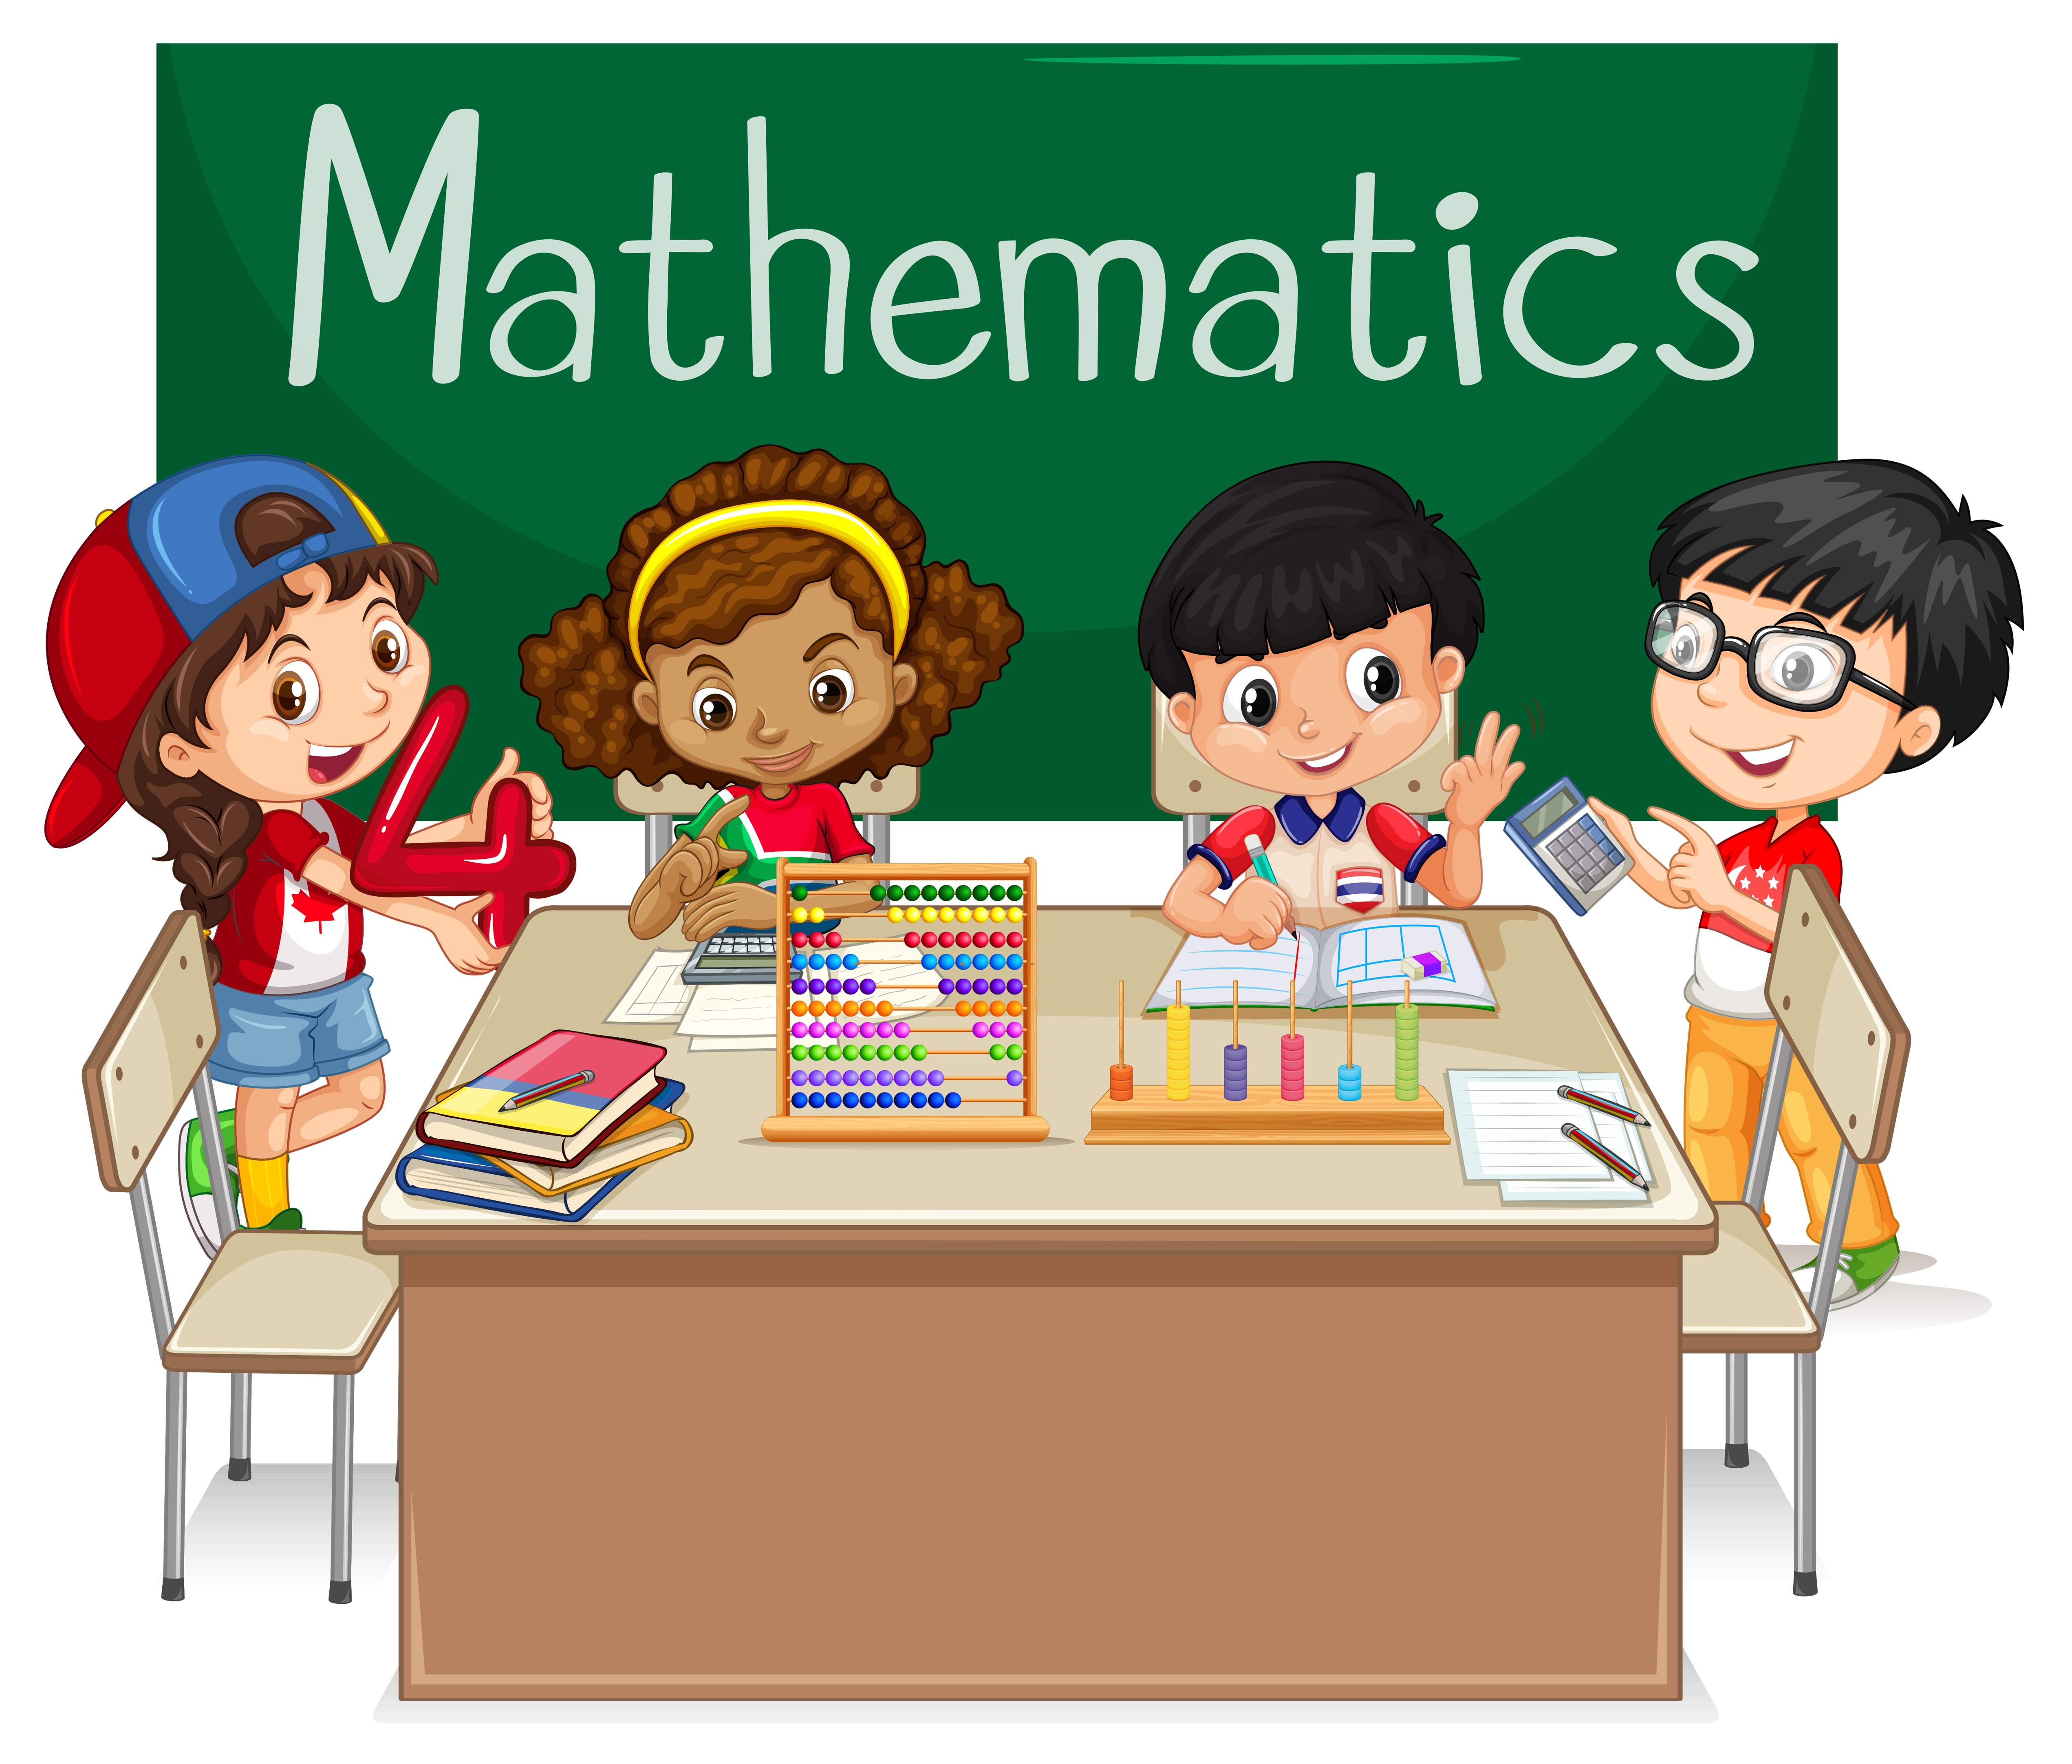 School subject for Mathematics with kids in class